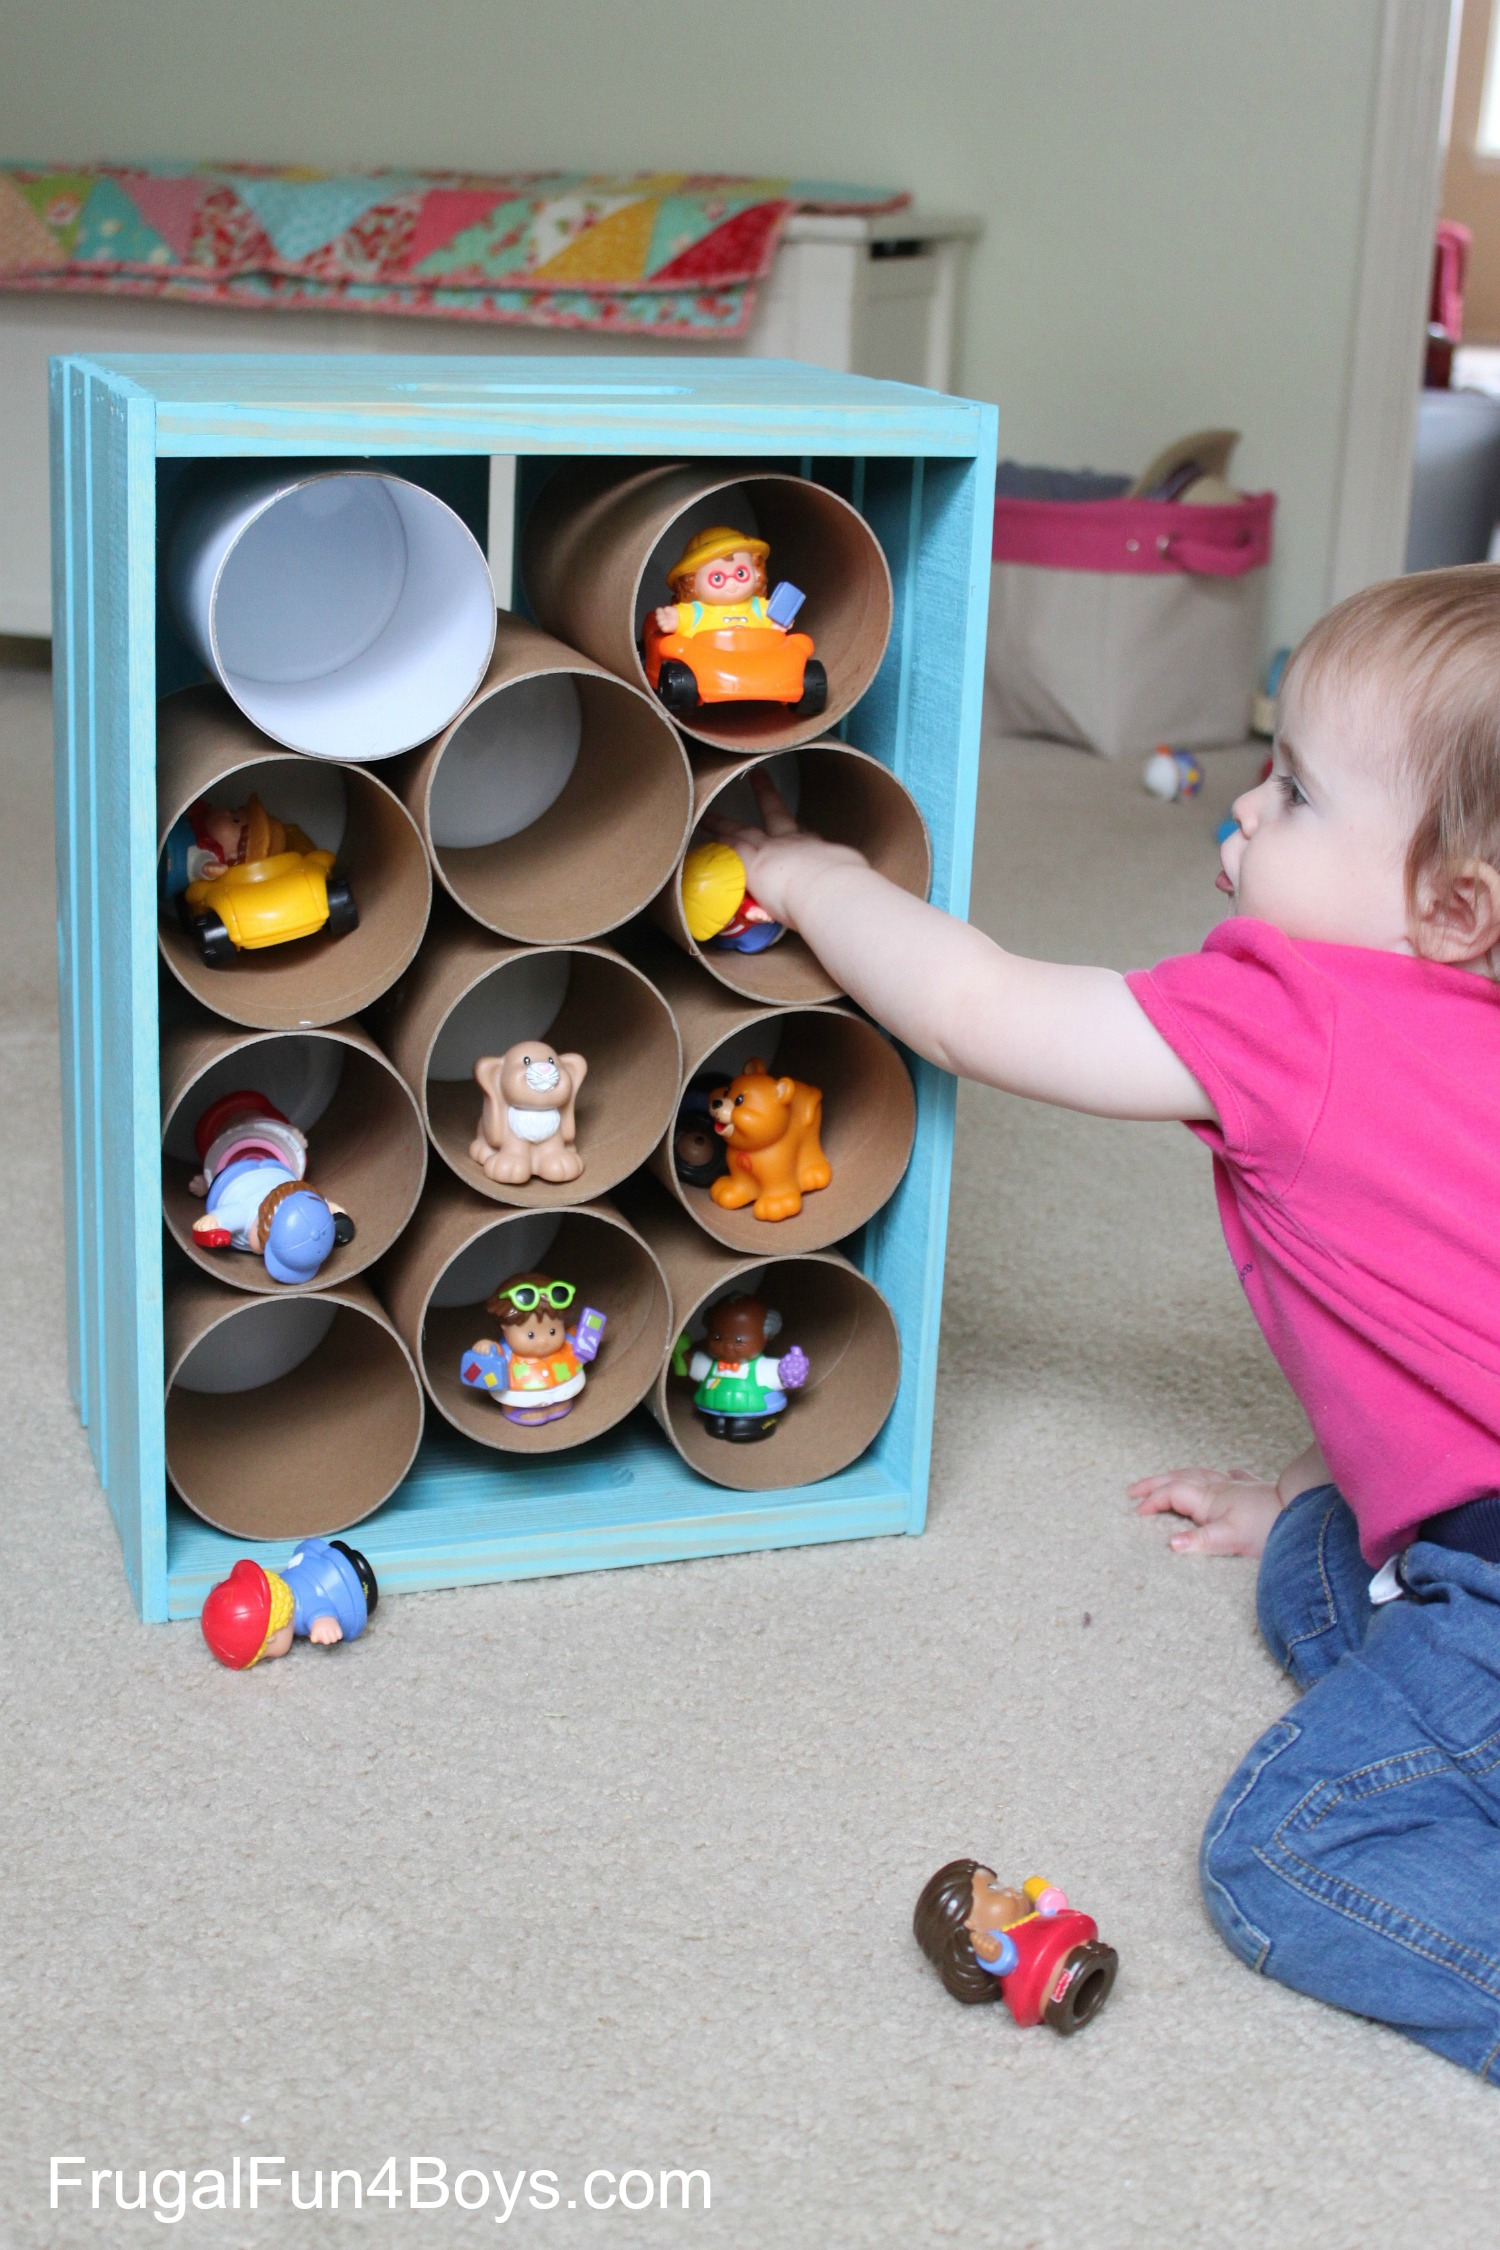 Wooden Crate Storage for Toys and Stuffed Animals